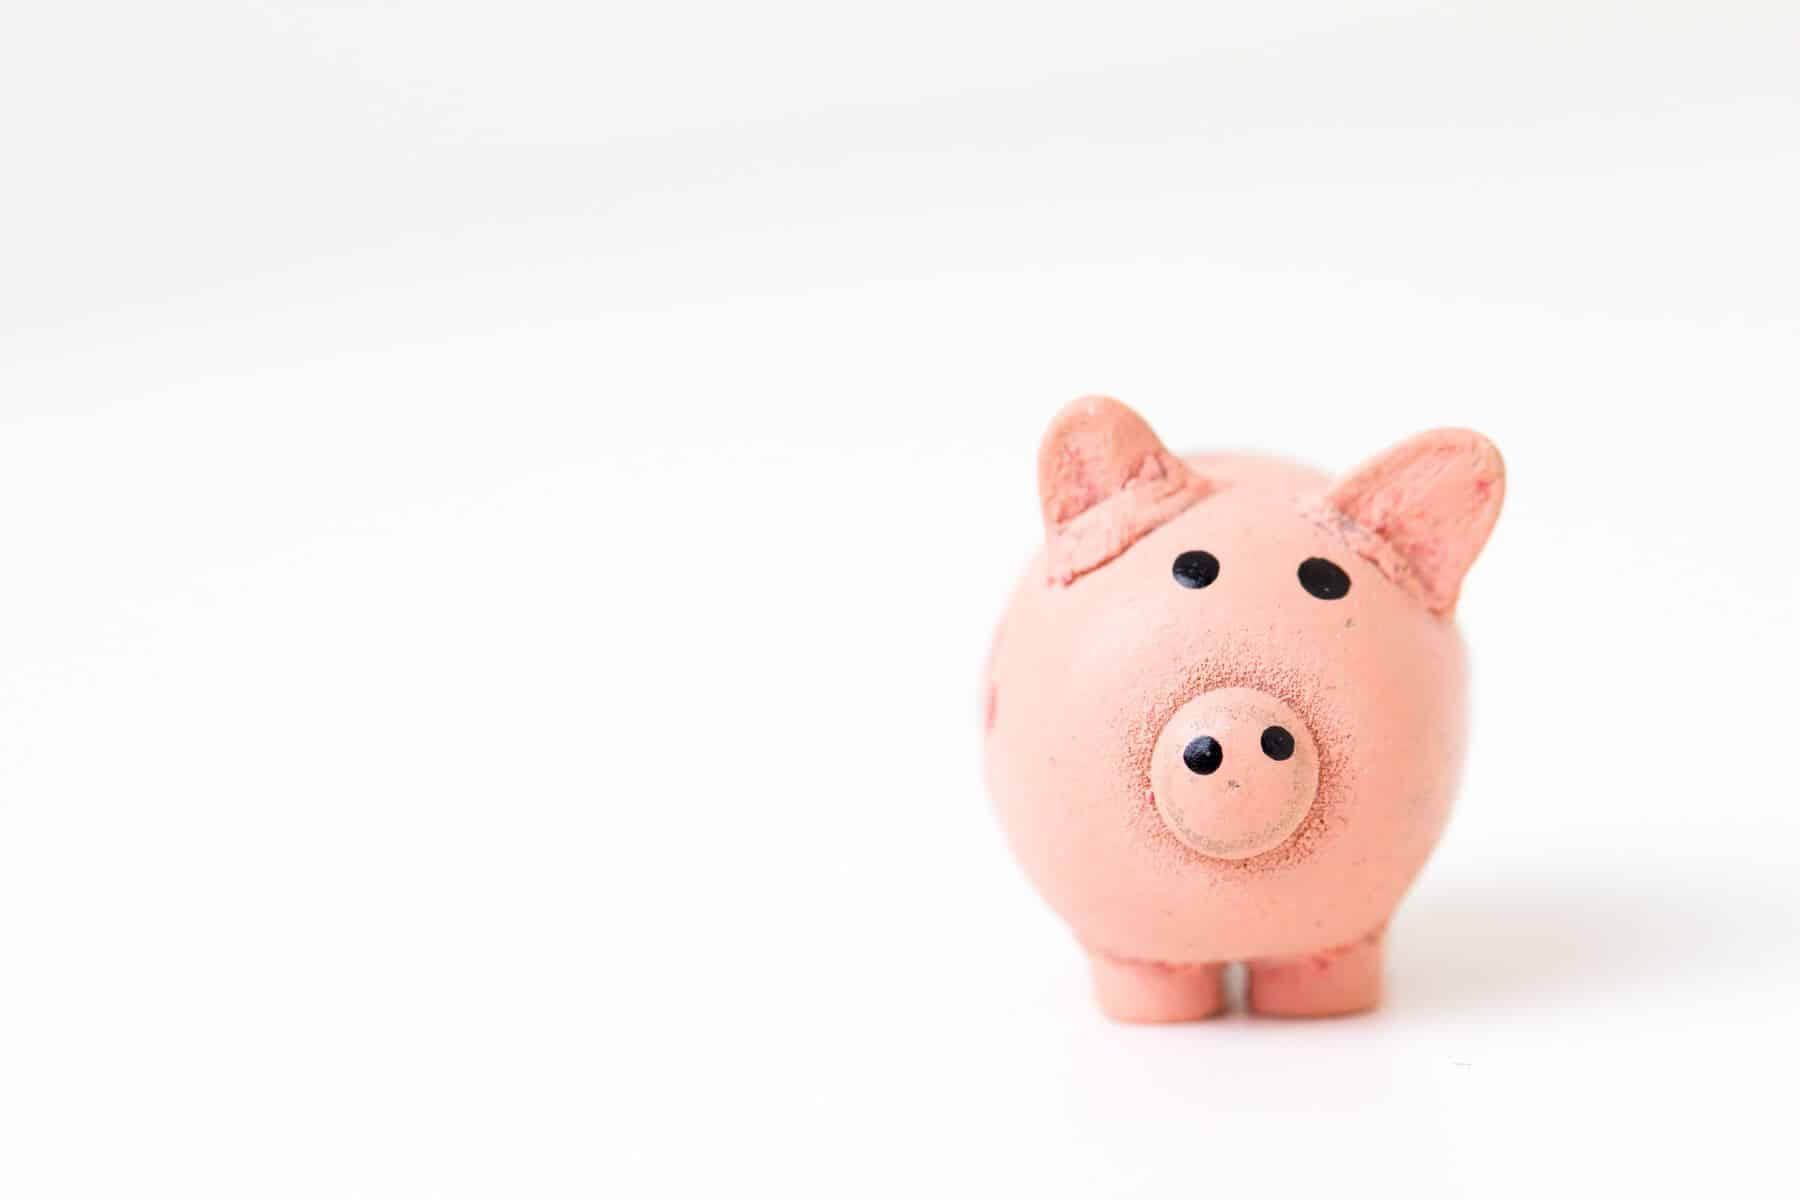 piggy bank - 5 Ways A Garden Lodge Could Benefit You Financially